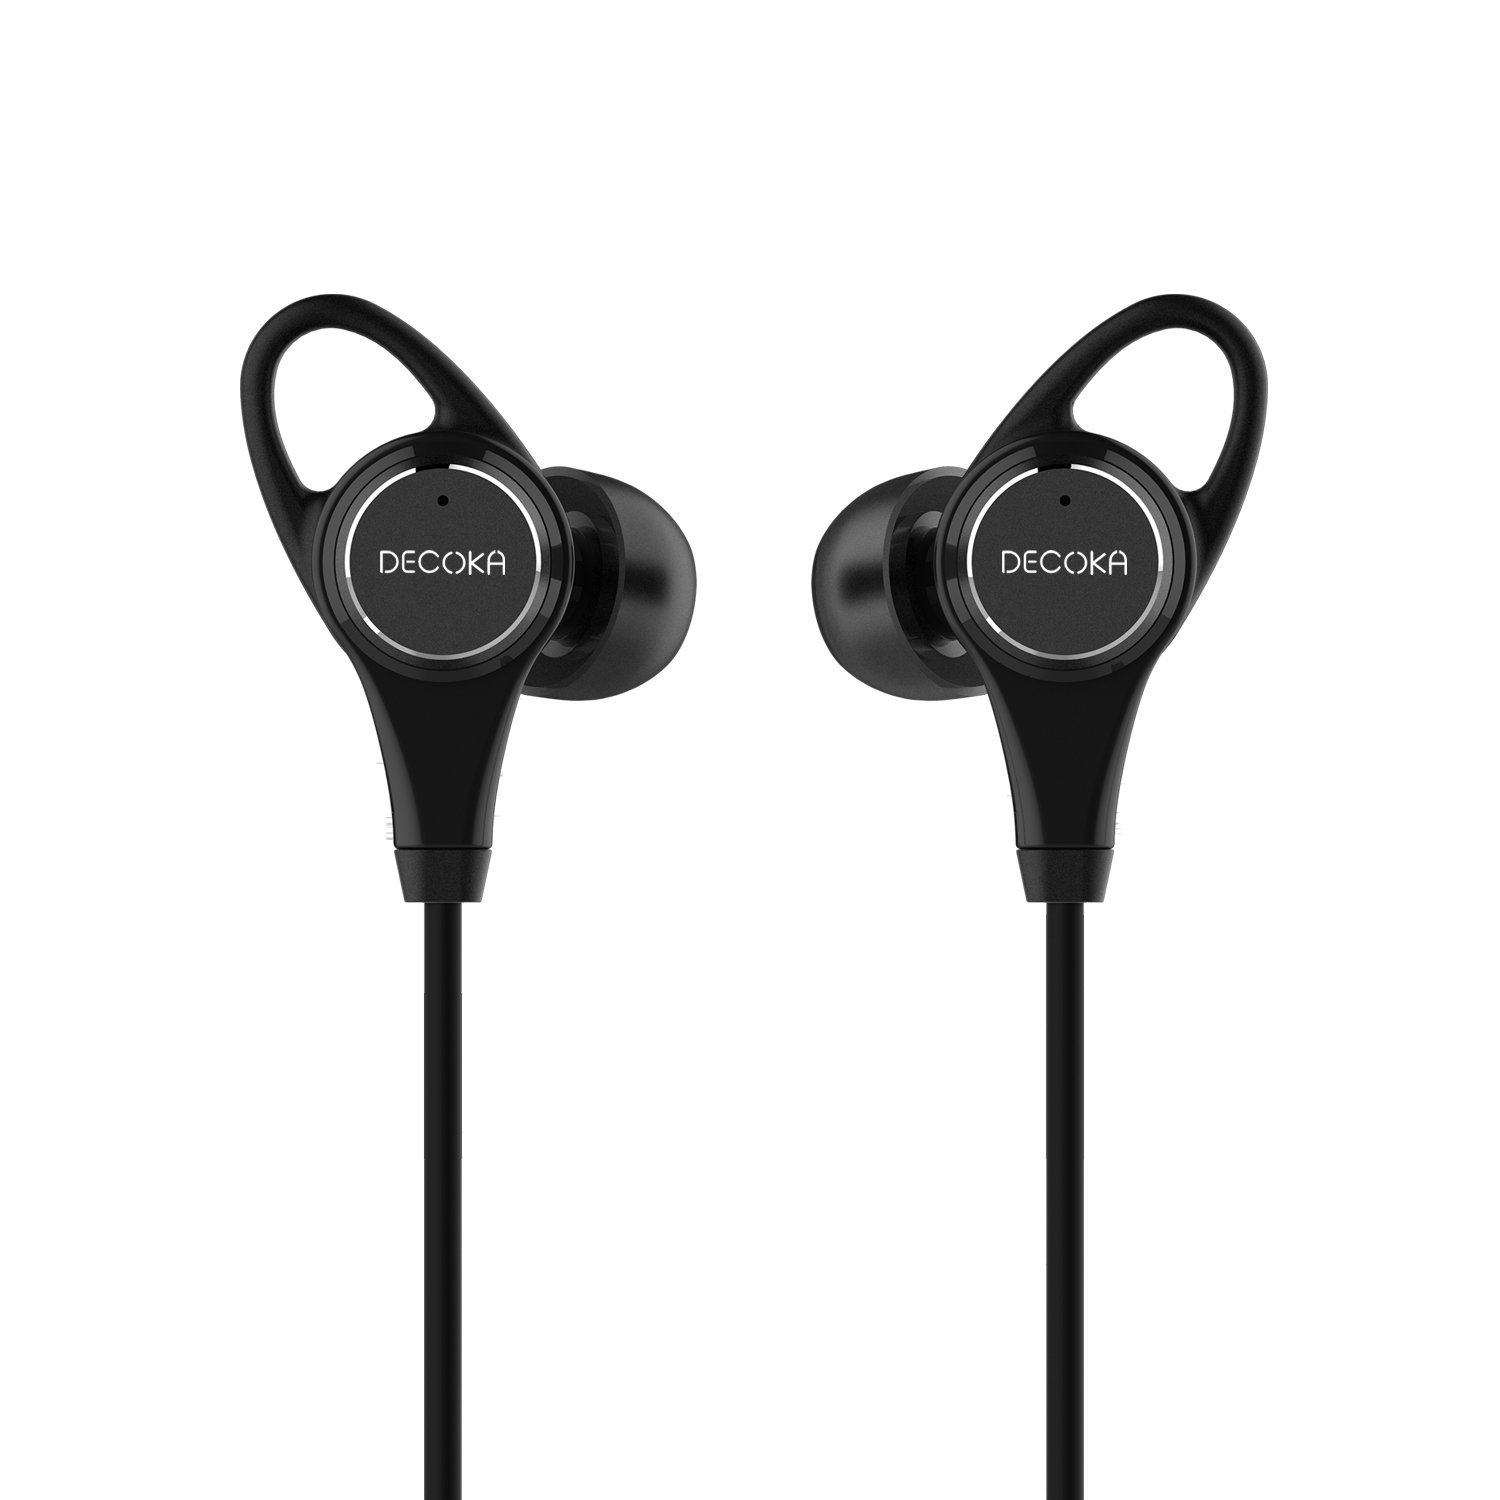 Active Noise Cancelling Headphones, DECOKA in-Ear Wired ANC Earphones with 28dB Noise Reduction, Awareness Monitor Mode, Built-in Mic and Remote Control, 3.5mm Jack, 20 Hours Playtime (Black)